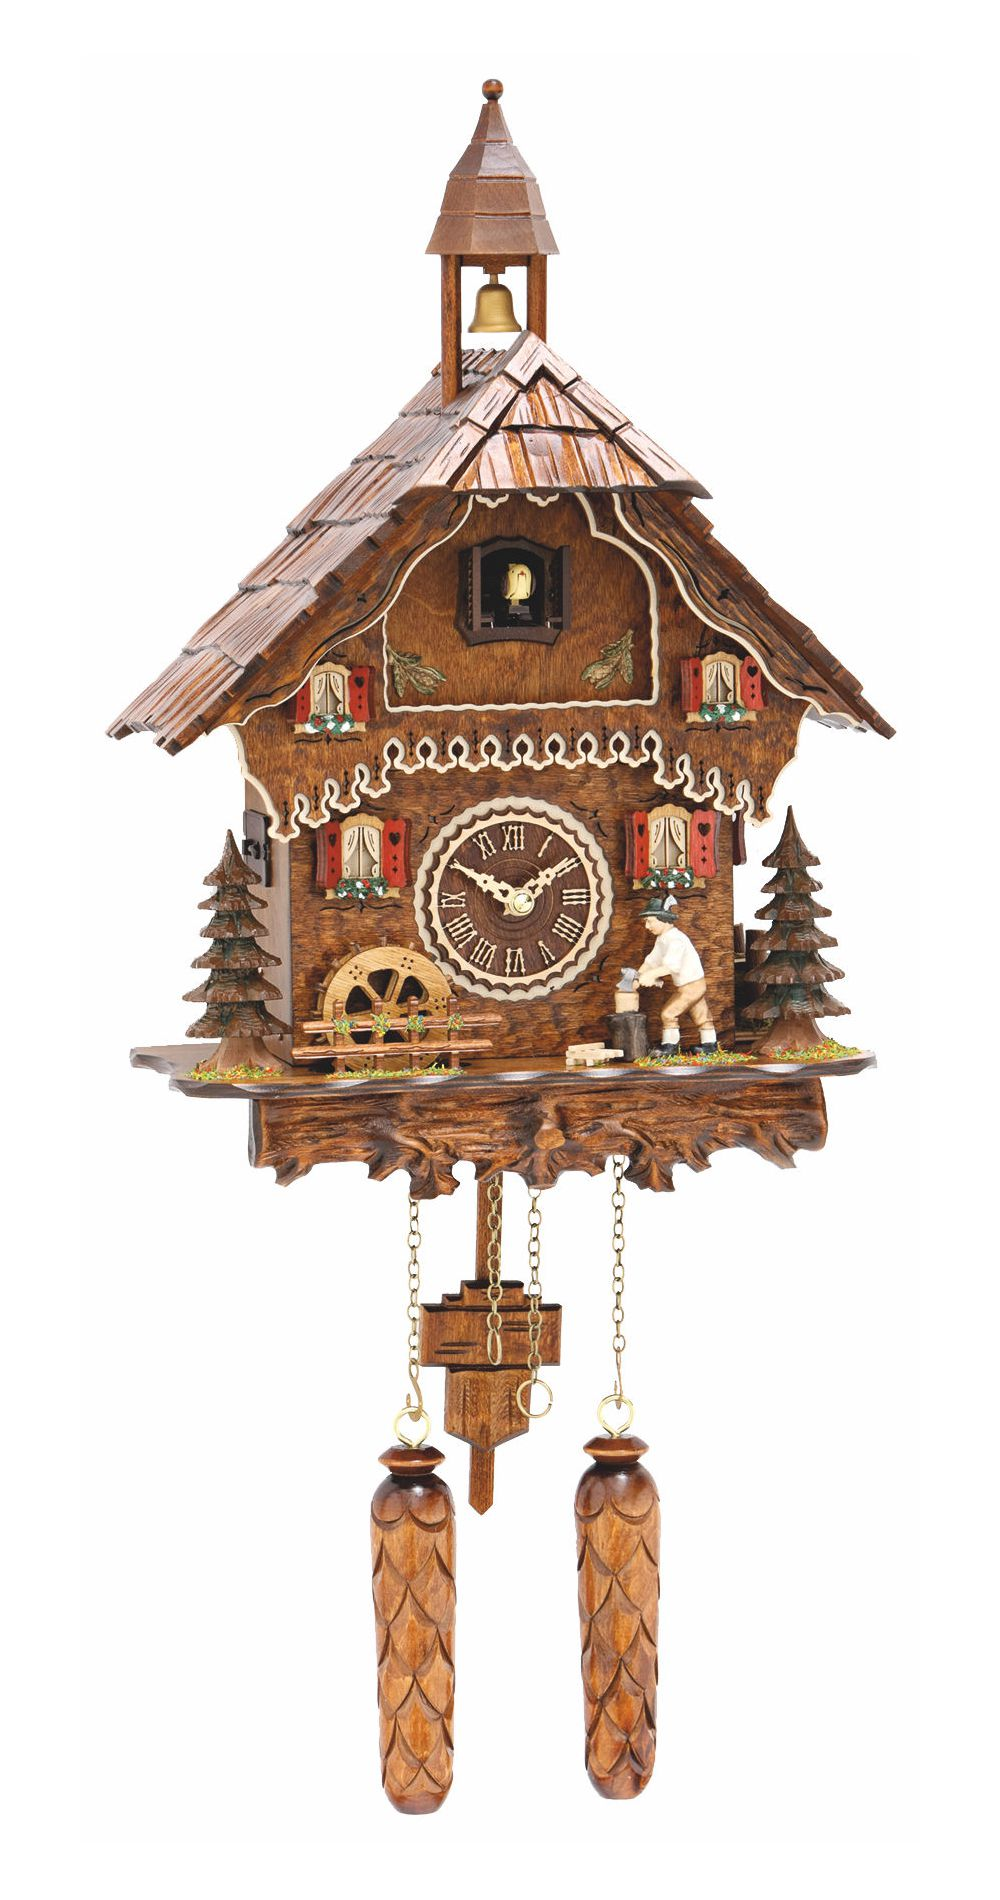 Quartz Cuckoo Clock with Wood Chopper and Wheel with Music - Cuckoo Clock Meister